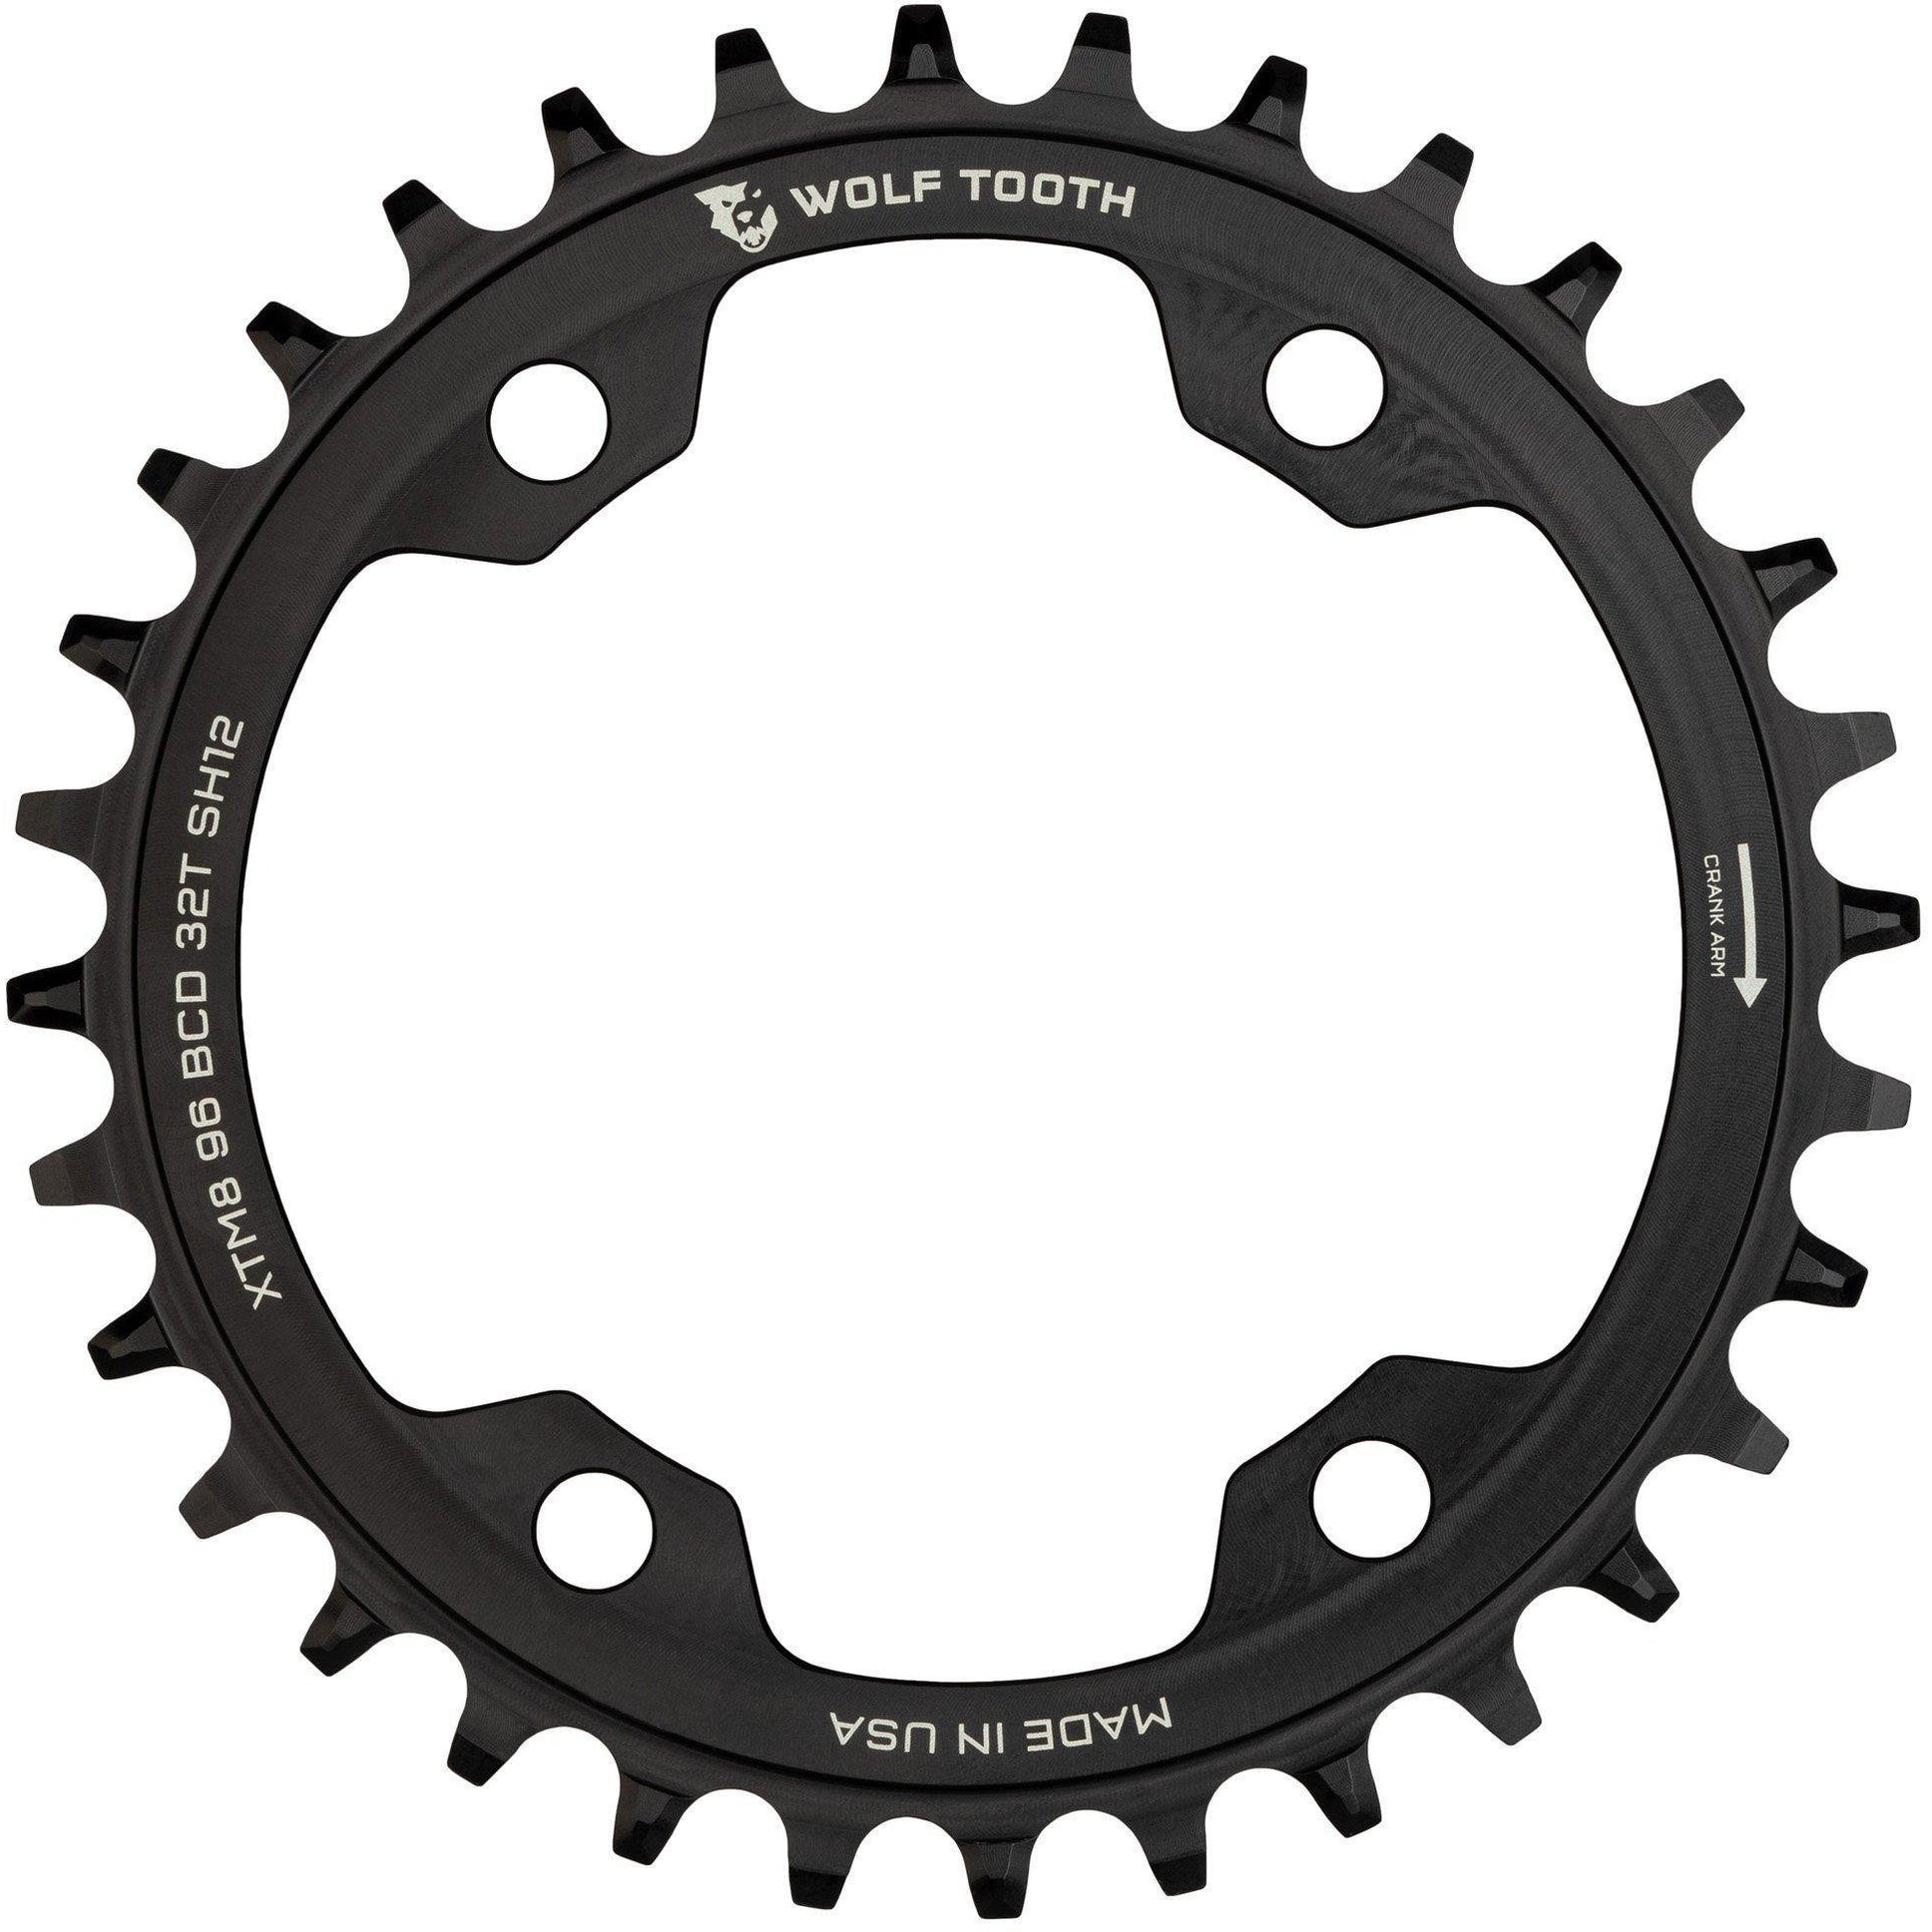 Wolf Tooth-Wolf Tooth 96 BCD Chainring for XT M8000 Shimano 12 speed-30T-WTXTM8K9630SH12-saddleback-elite-performance-cycling